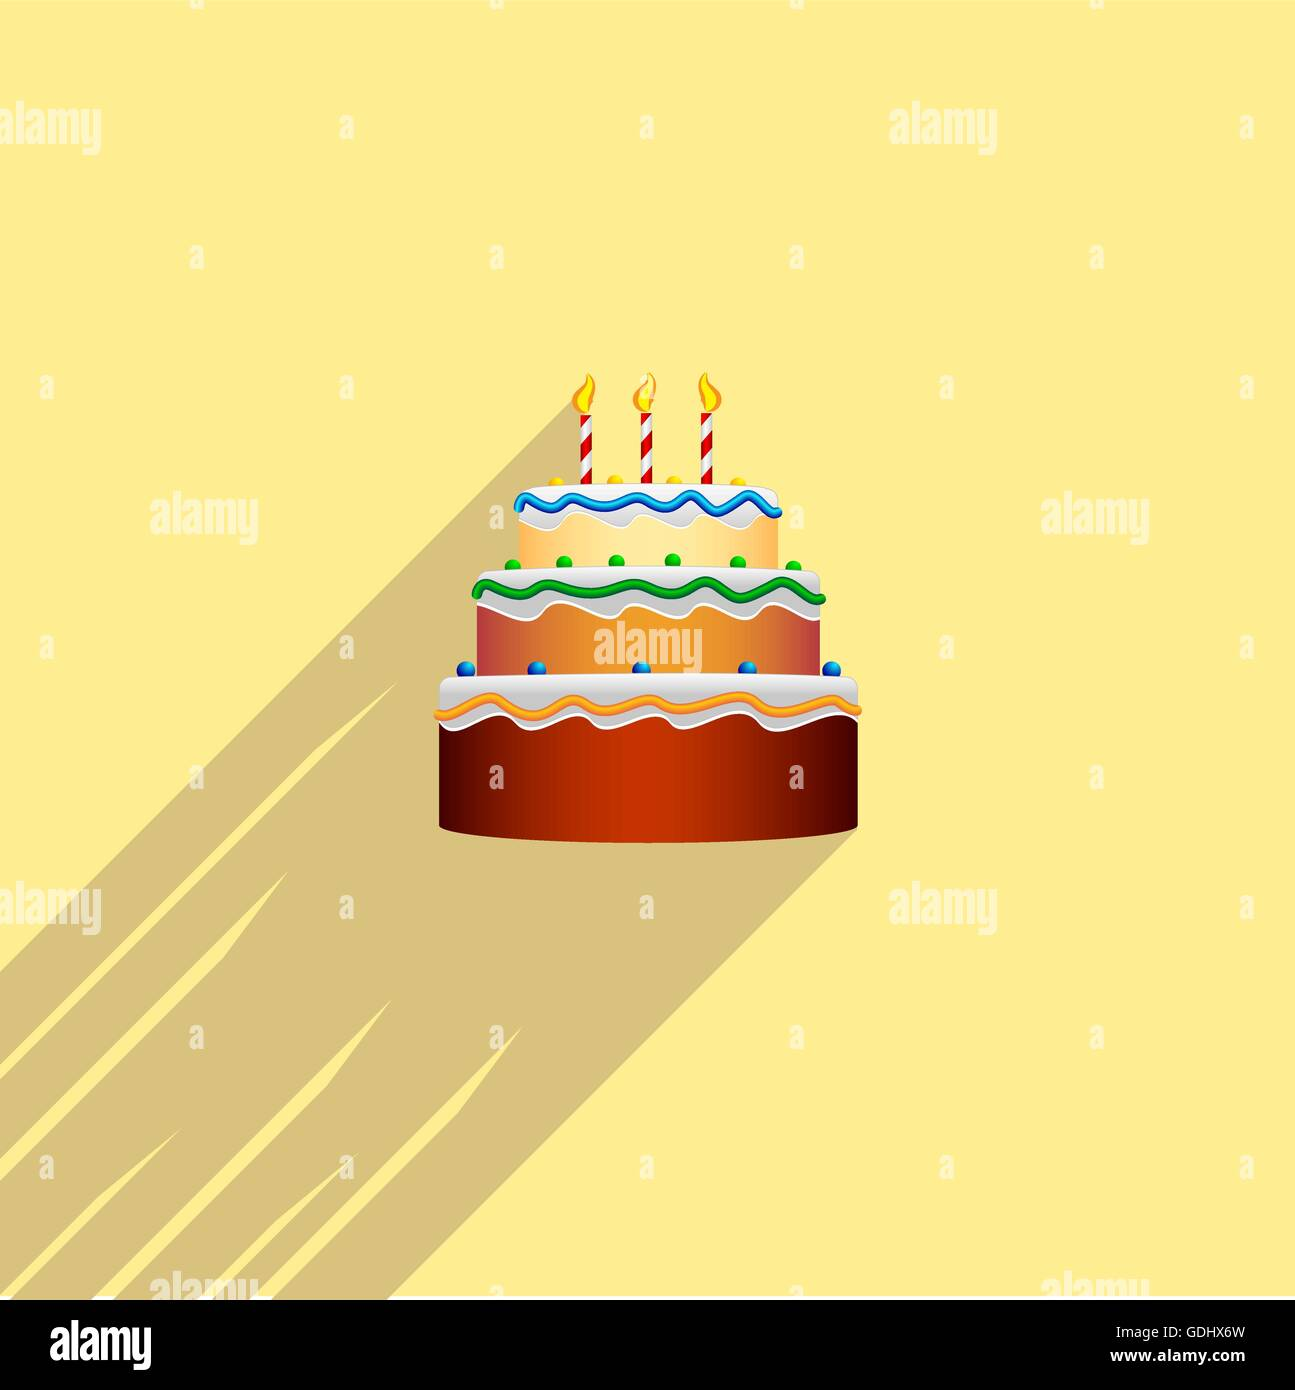 Colorful Birthday Cake In The Style Of A Flat Design Logo Icon